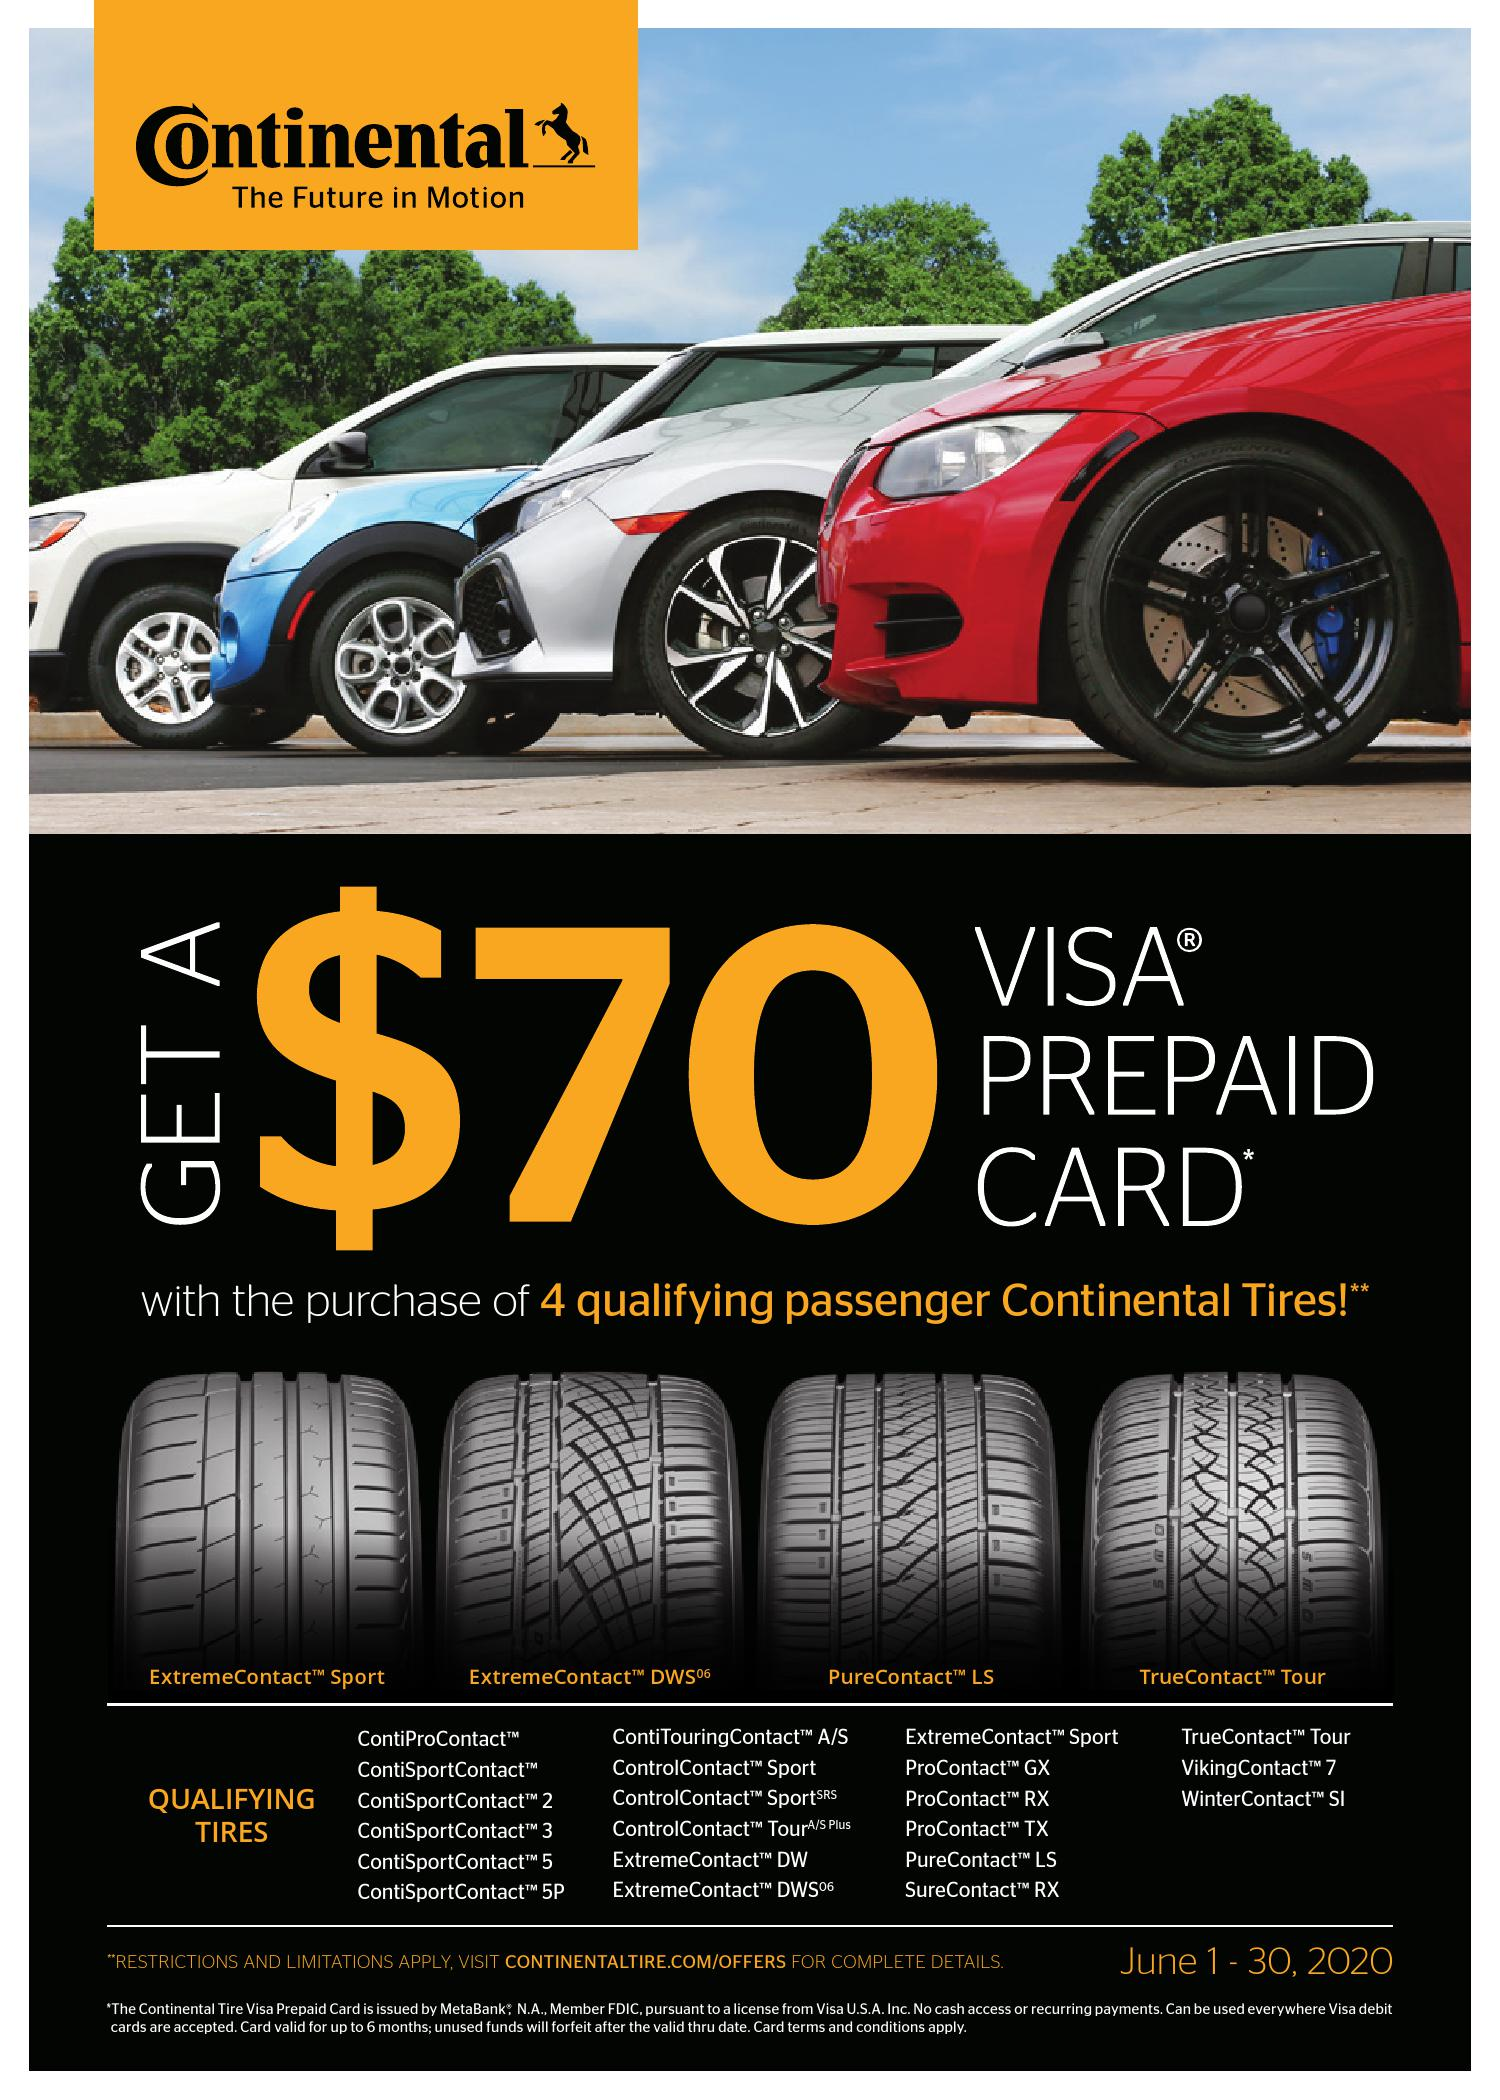 Get a $70 Visa Prepaid Card with the purchase of 4 qualifying passenger Continental Tires!